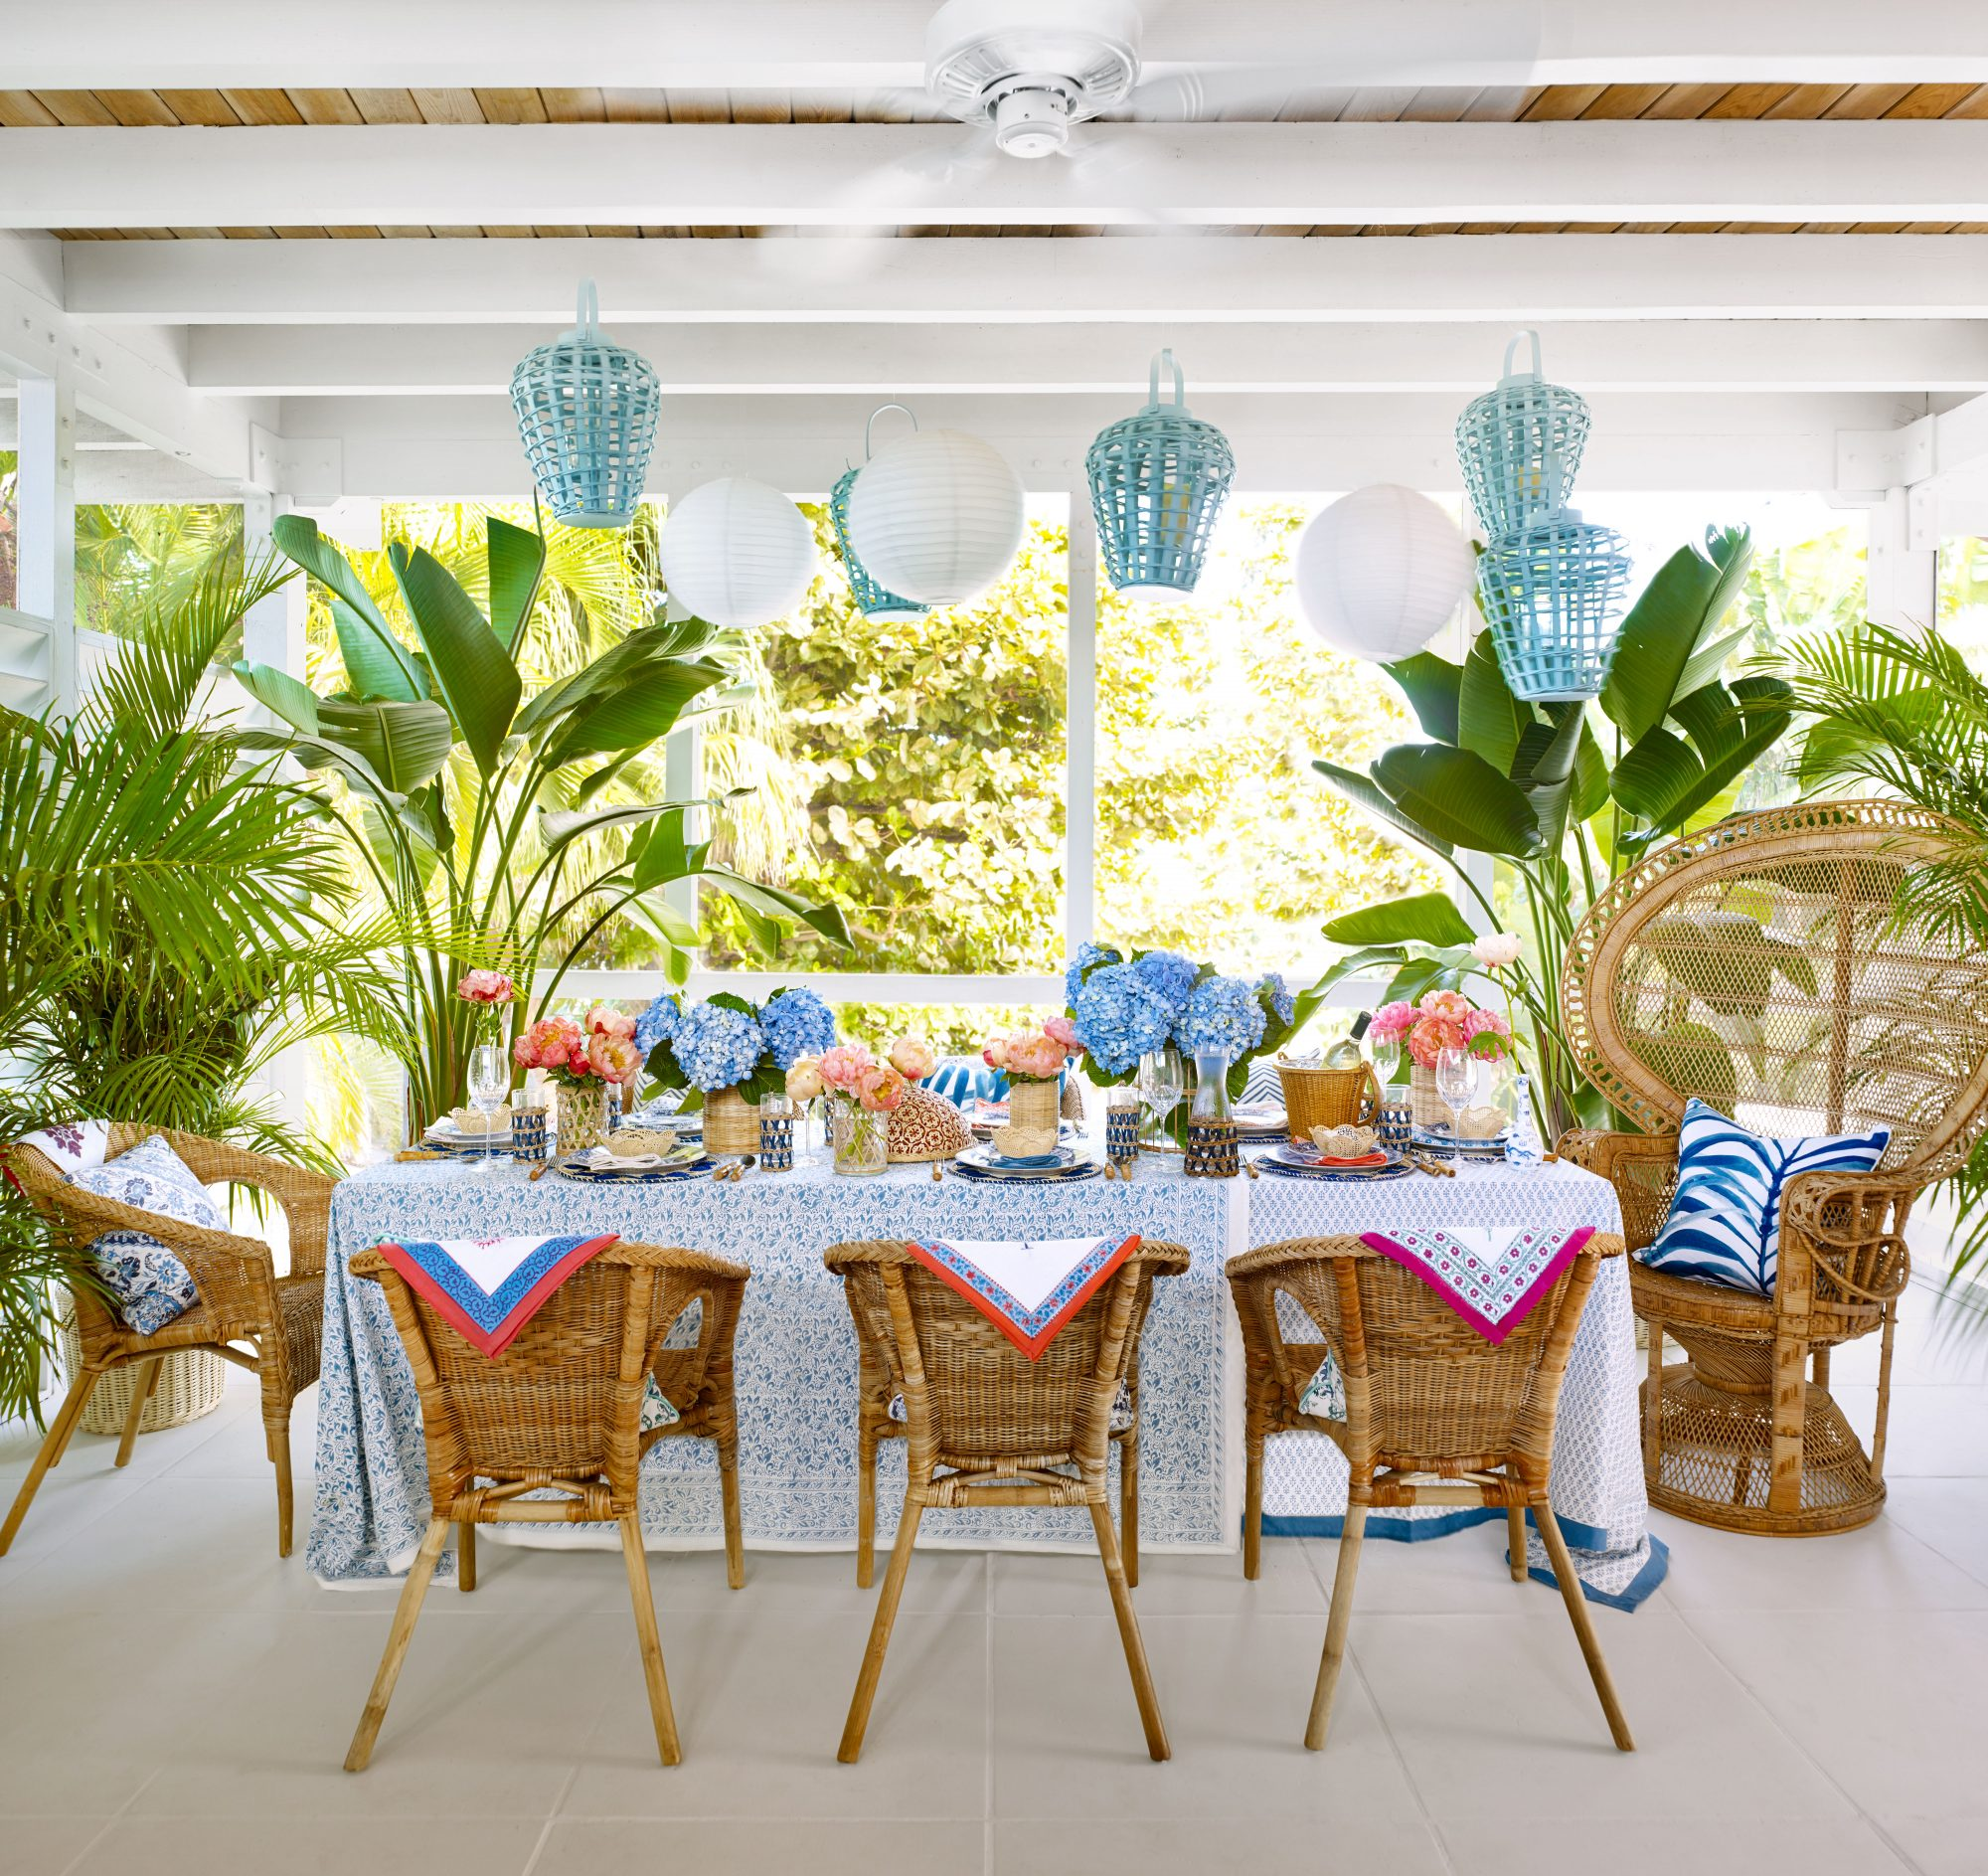 Emily Painter Palm Beach Rental Screened Porch Dining Area